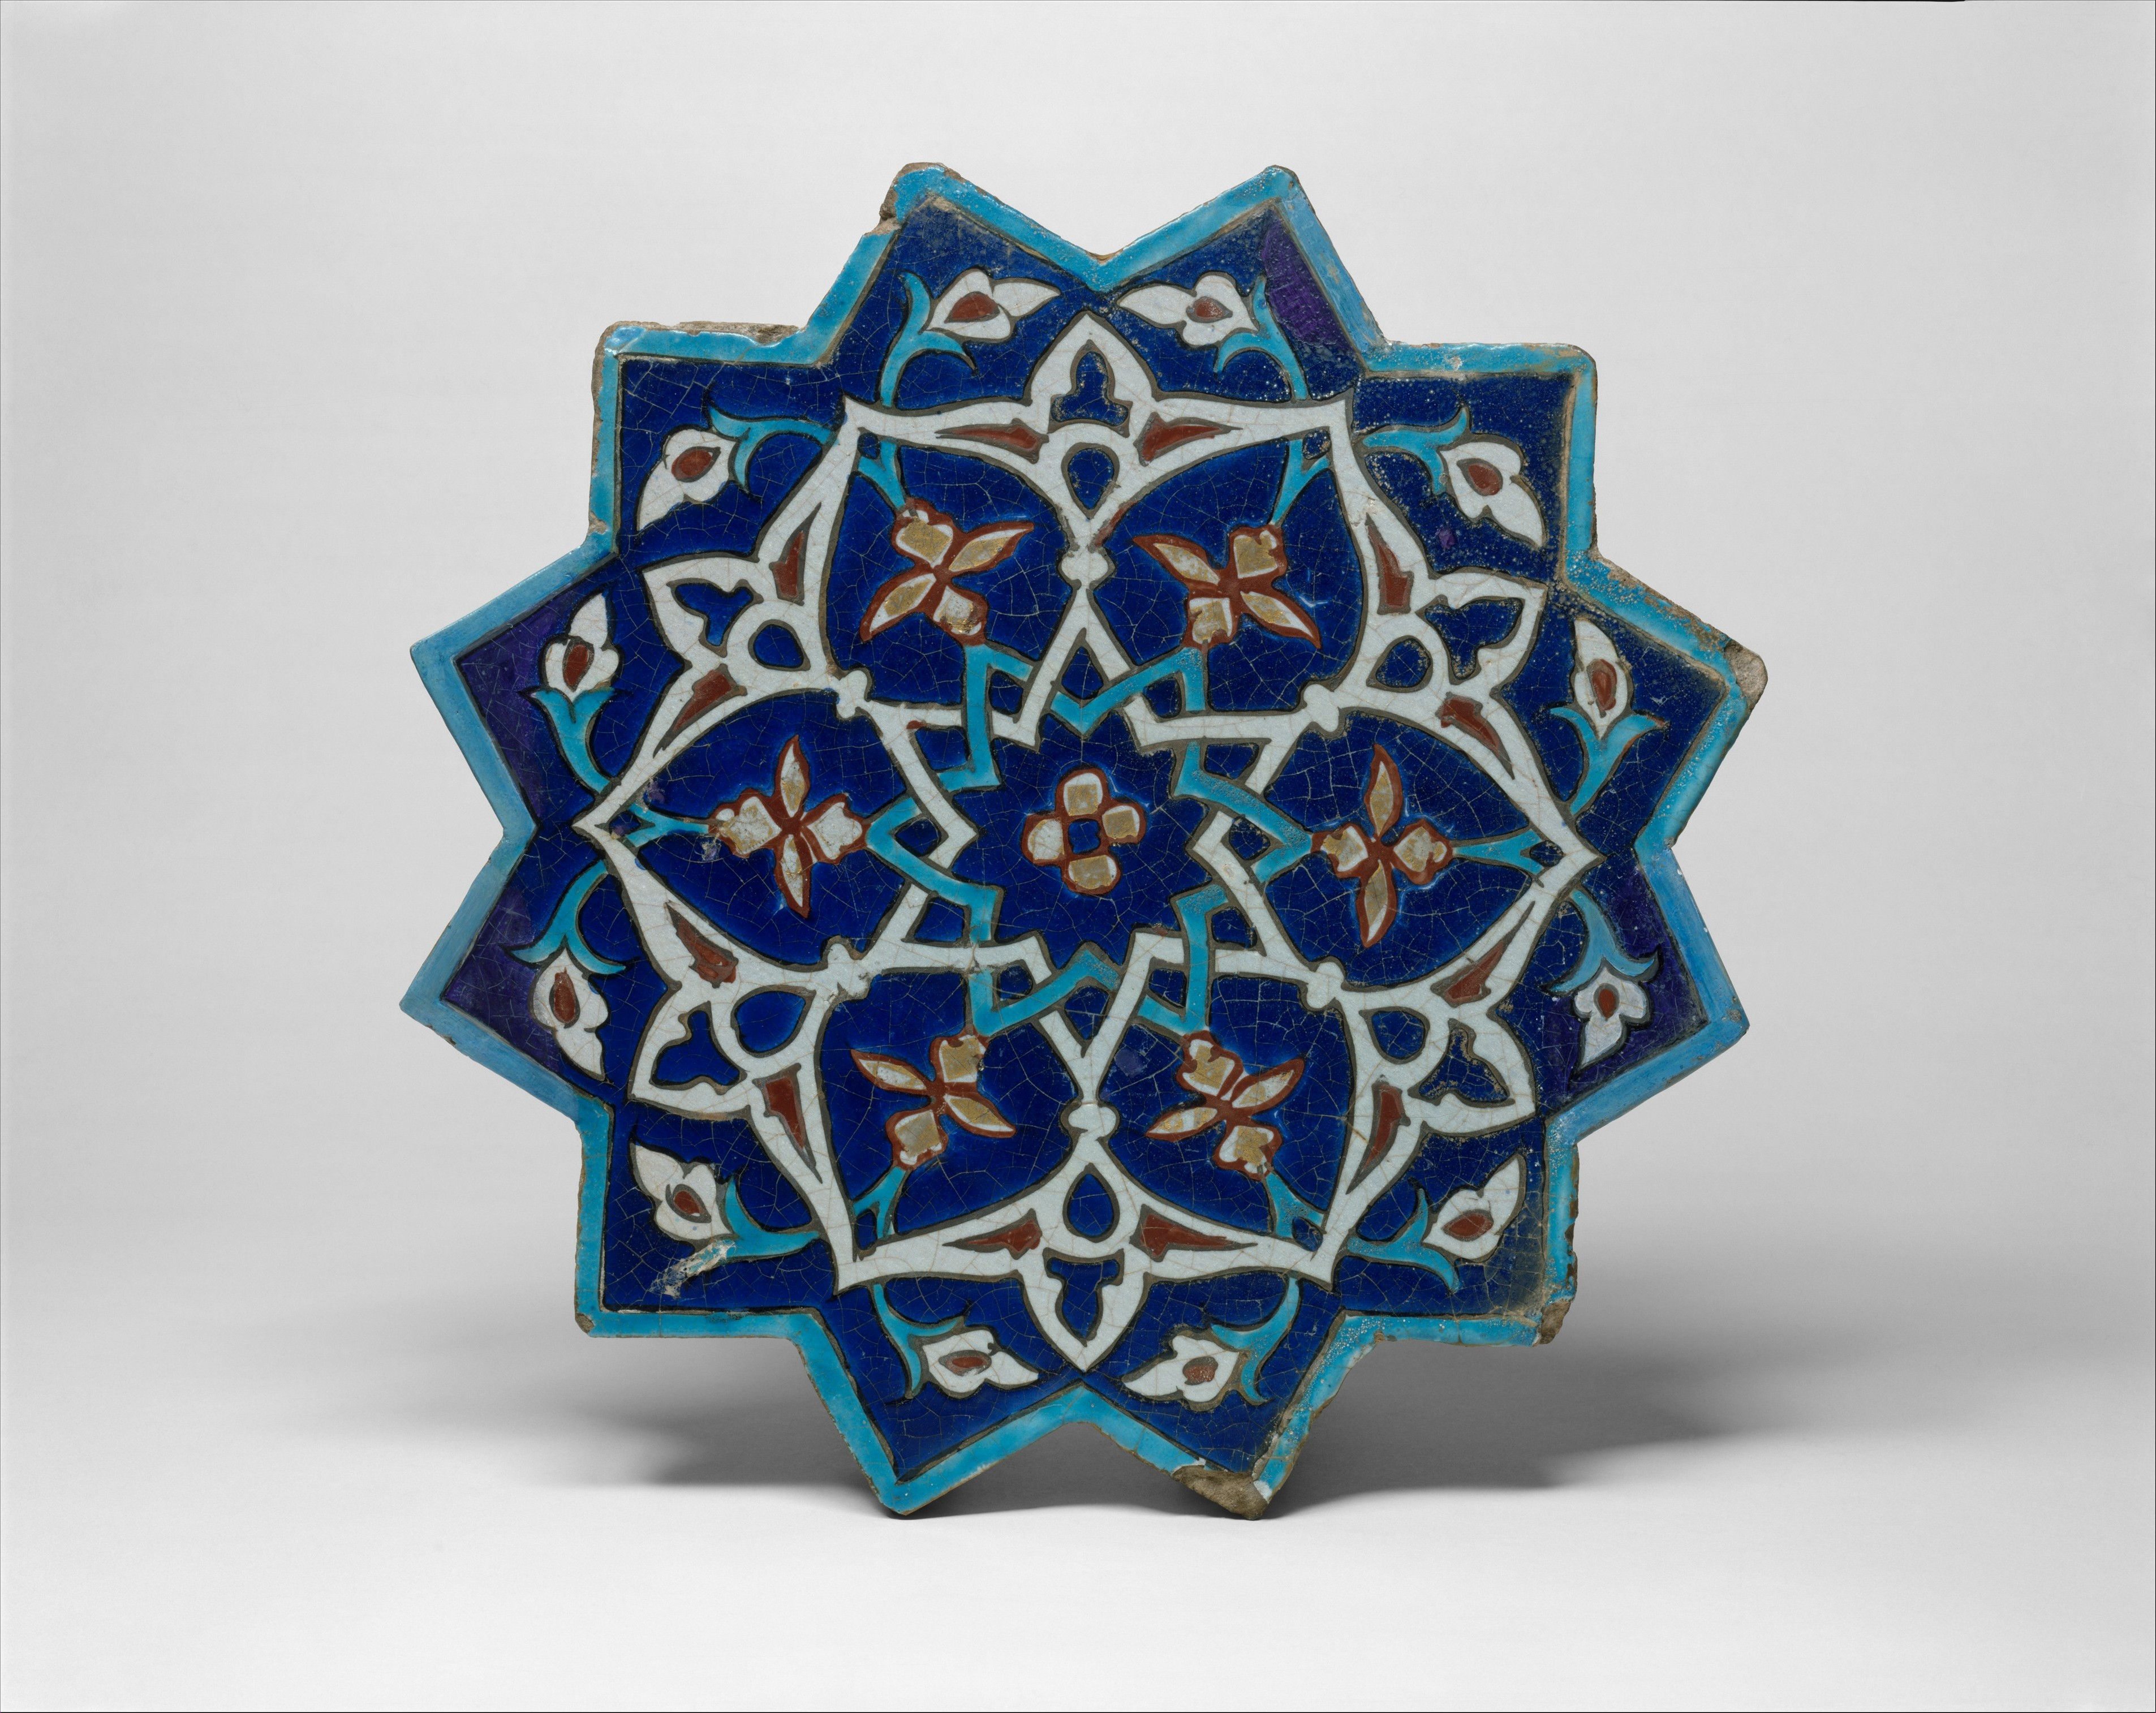 File:Twelve-Pointed Star-Shaped Tile MET DT11977.jpg - Wikimedia Commons